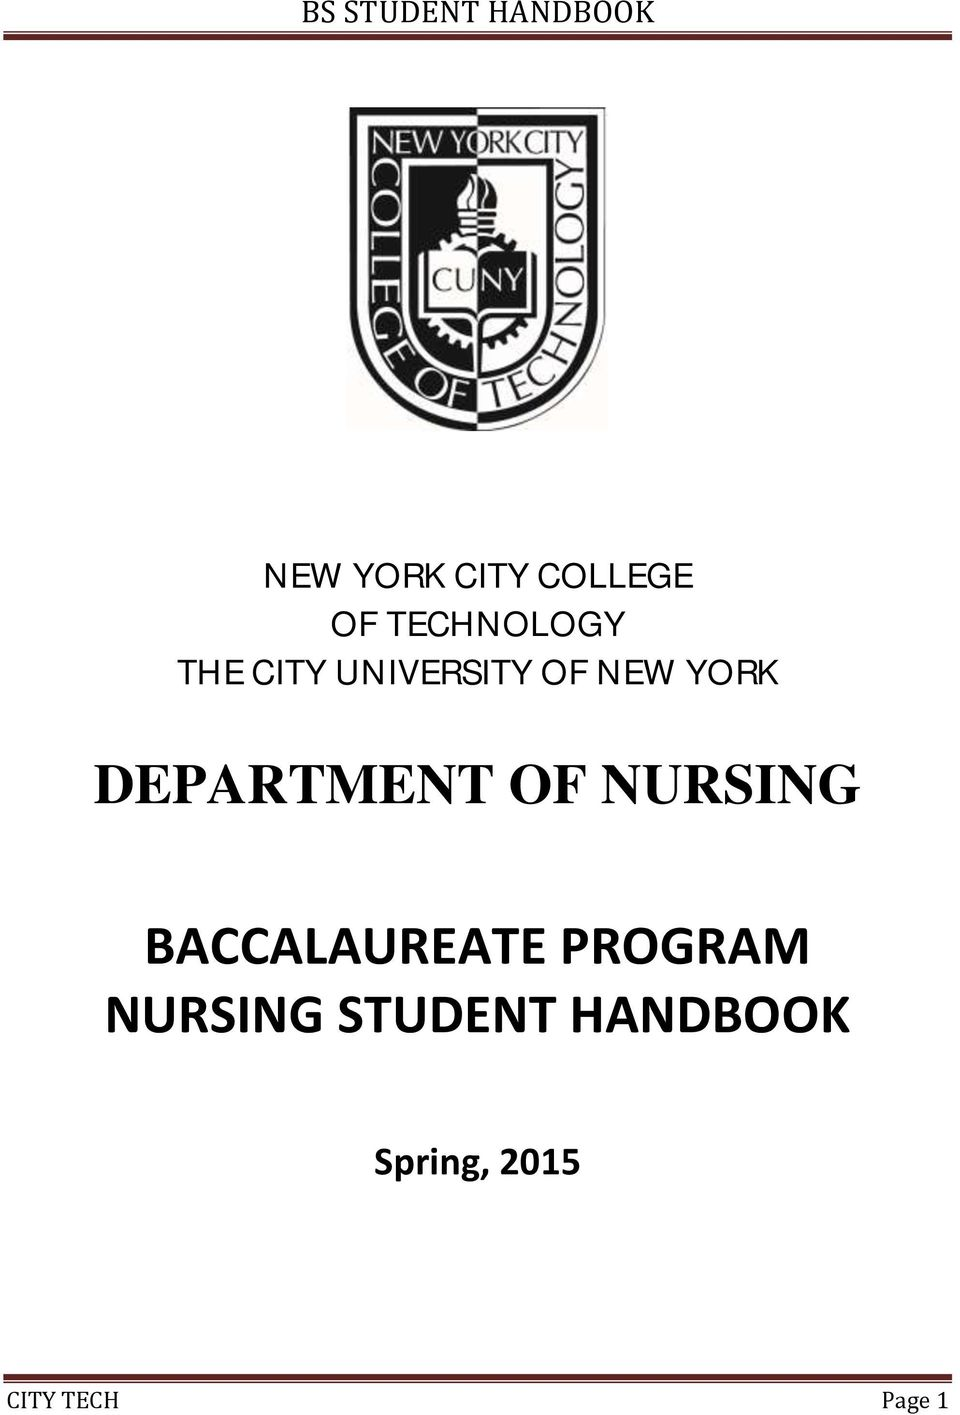 NURSING BACCALAUREATE PROGRAM NURSING